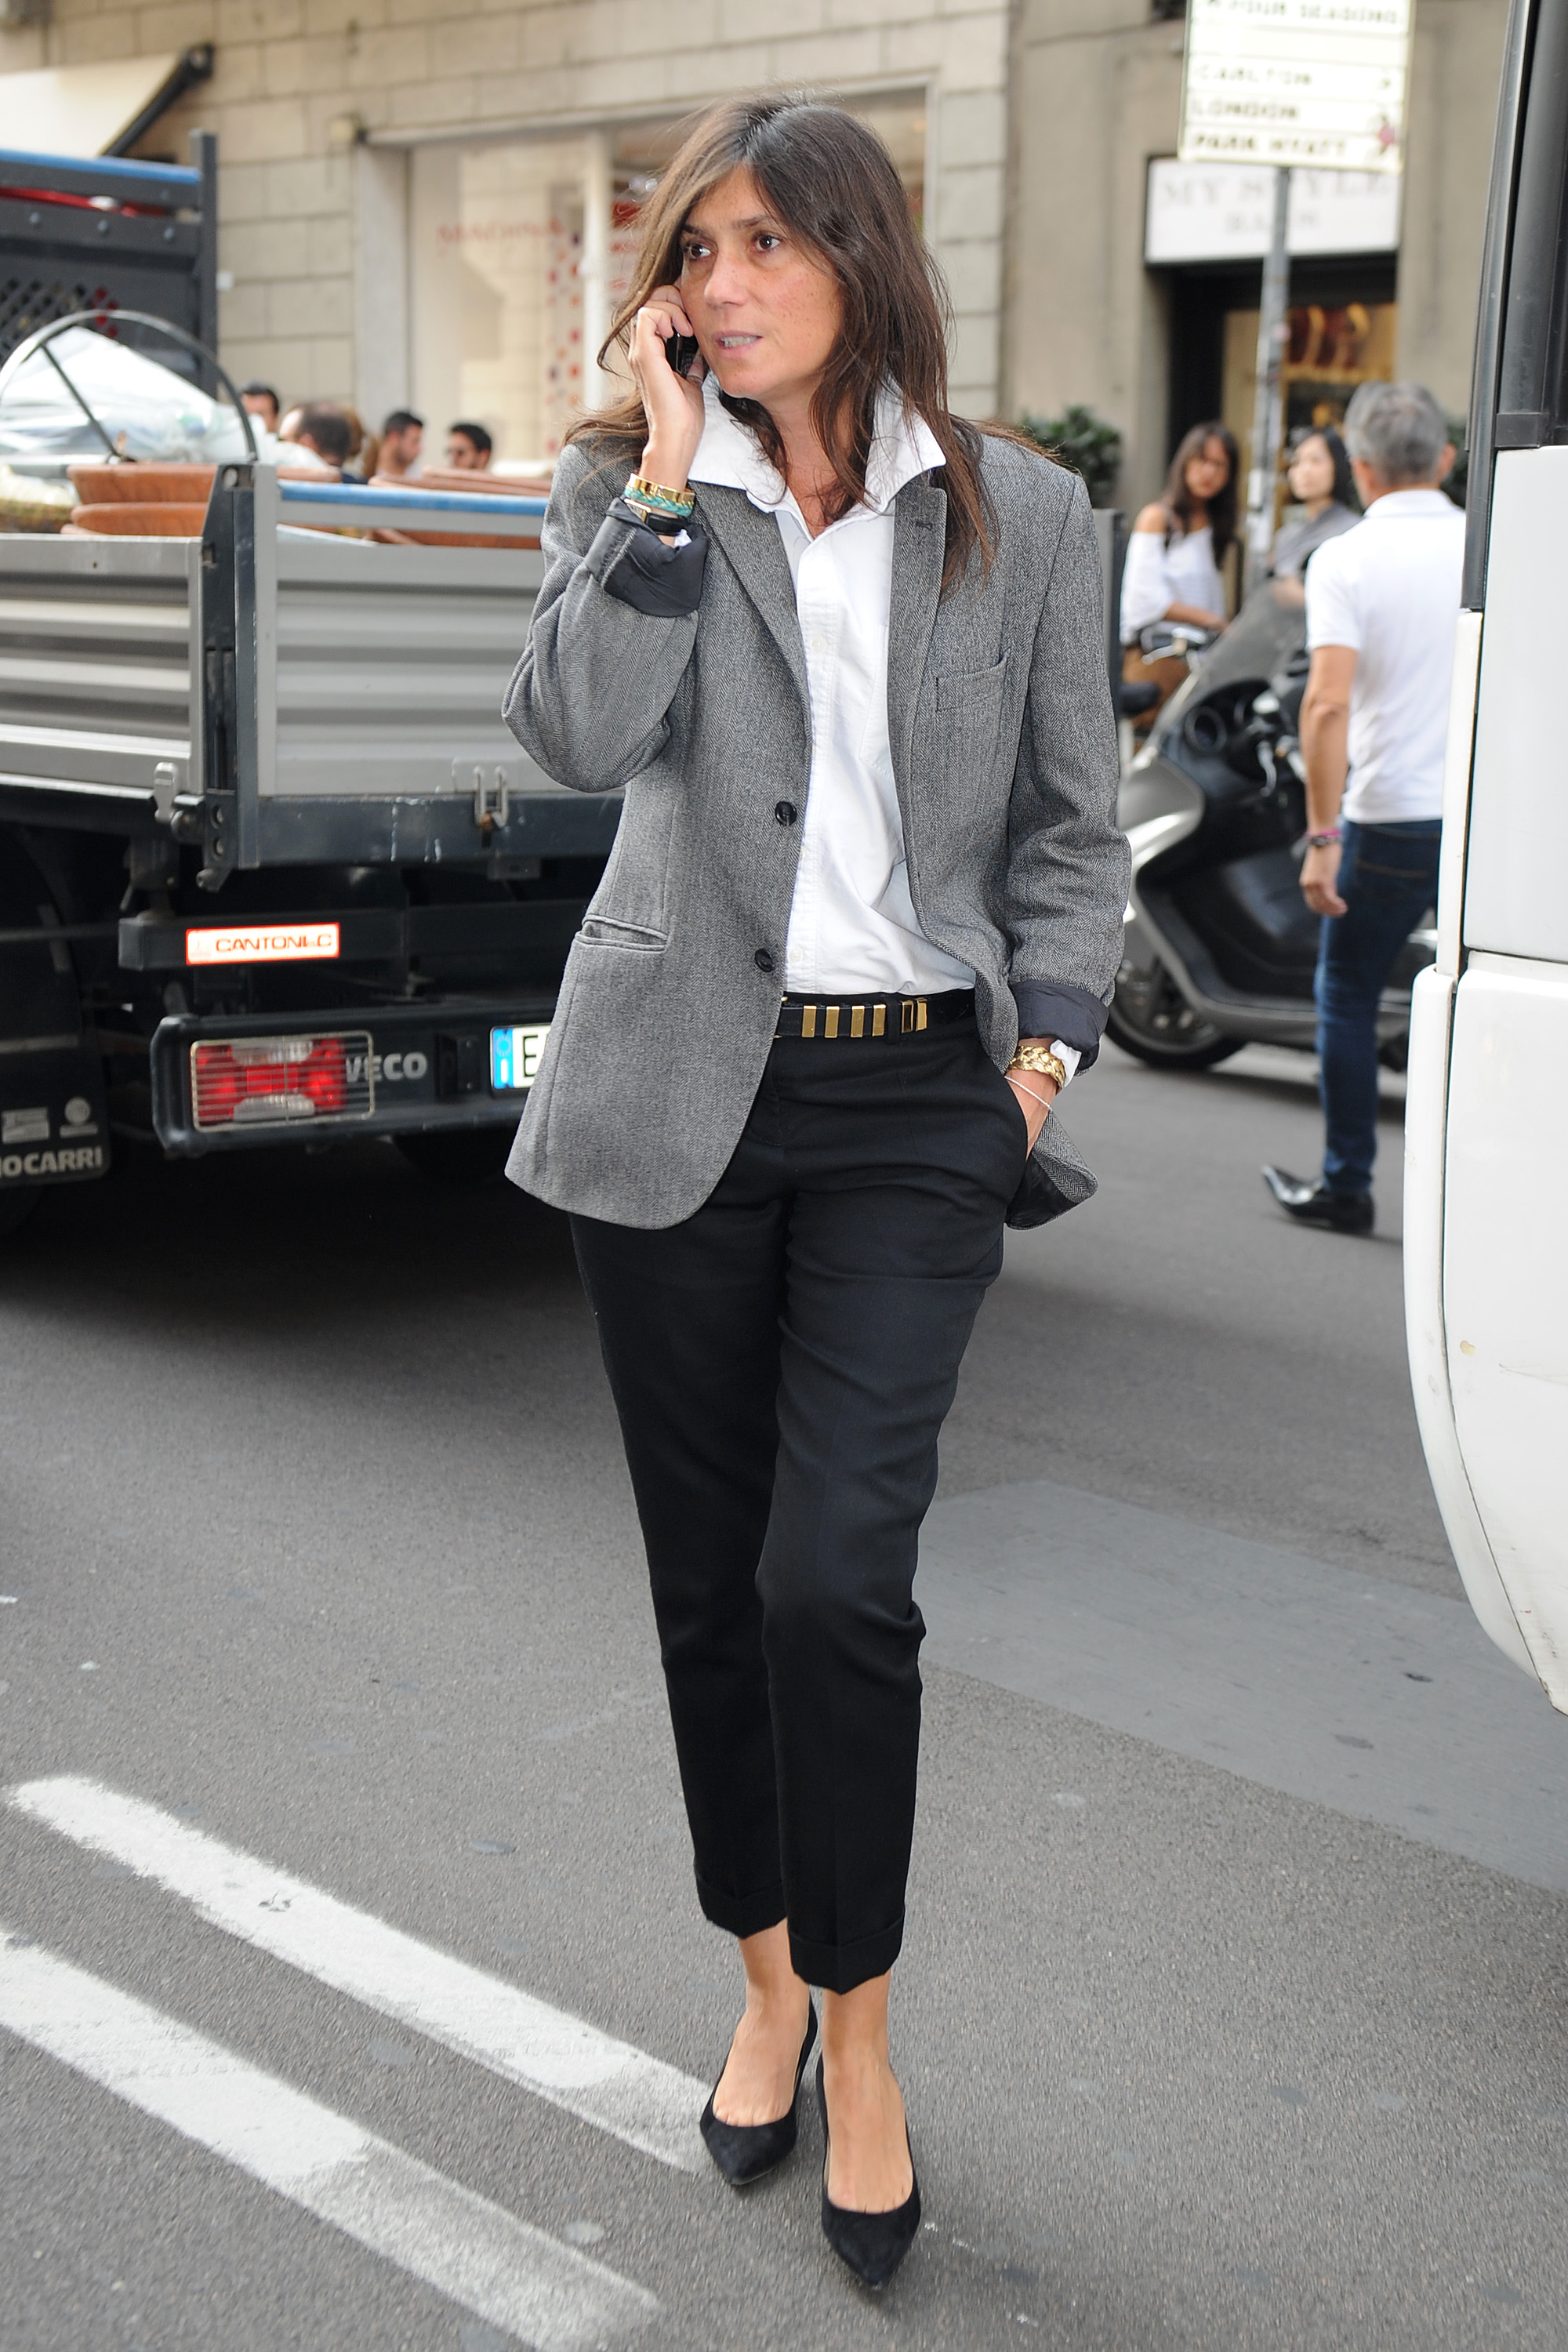 Emmanuelle Alt strikes the perfect monochromatic balance in chic tailored separates en route to Blumarine in Milan.